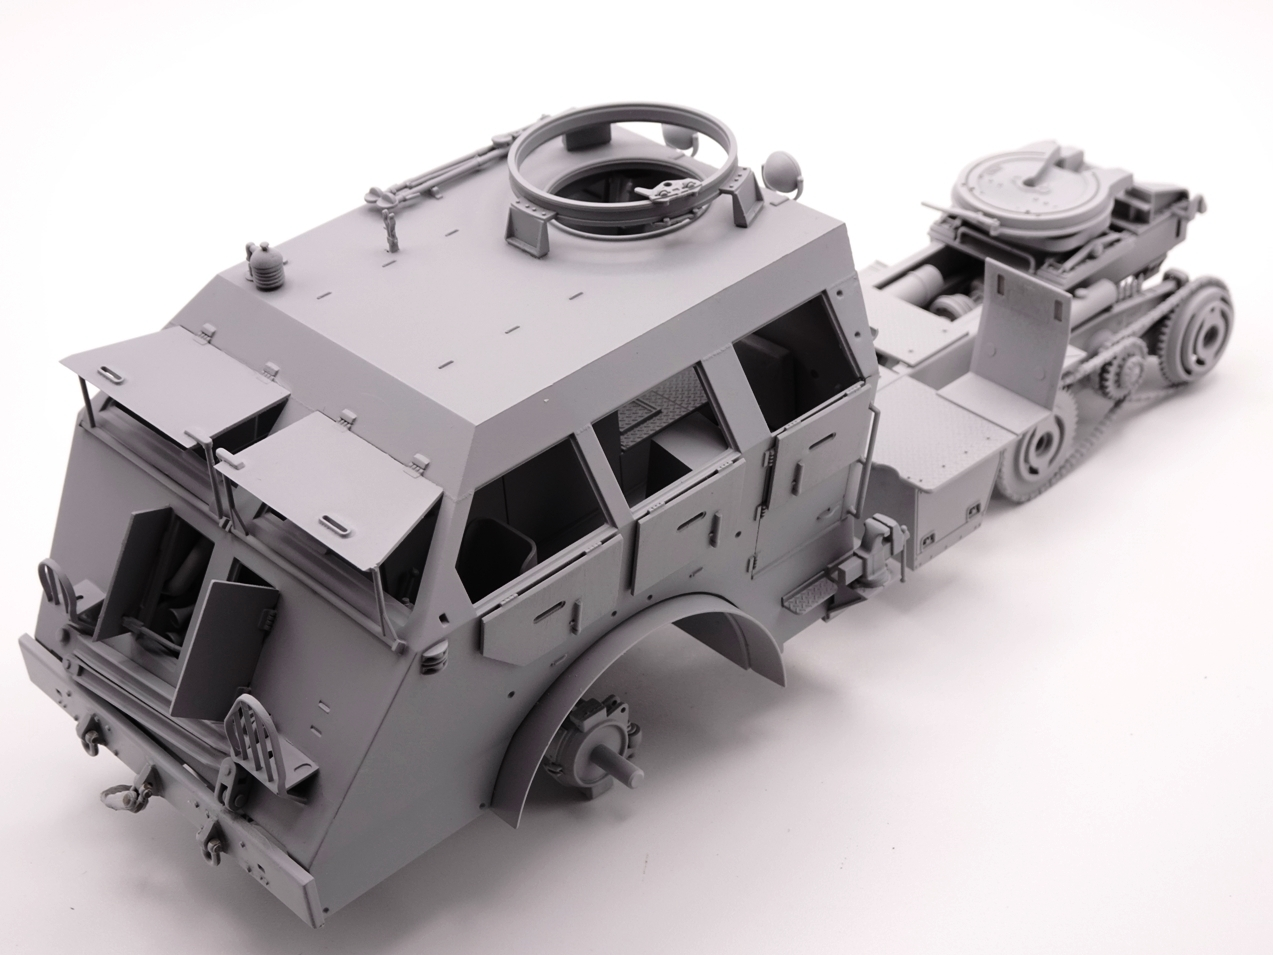 [Tamiya 1/35] M26 Armored tank recovery vehicle réf. 35244 - Page 2 M26-2709-2